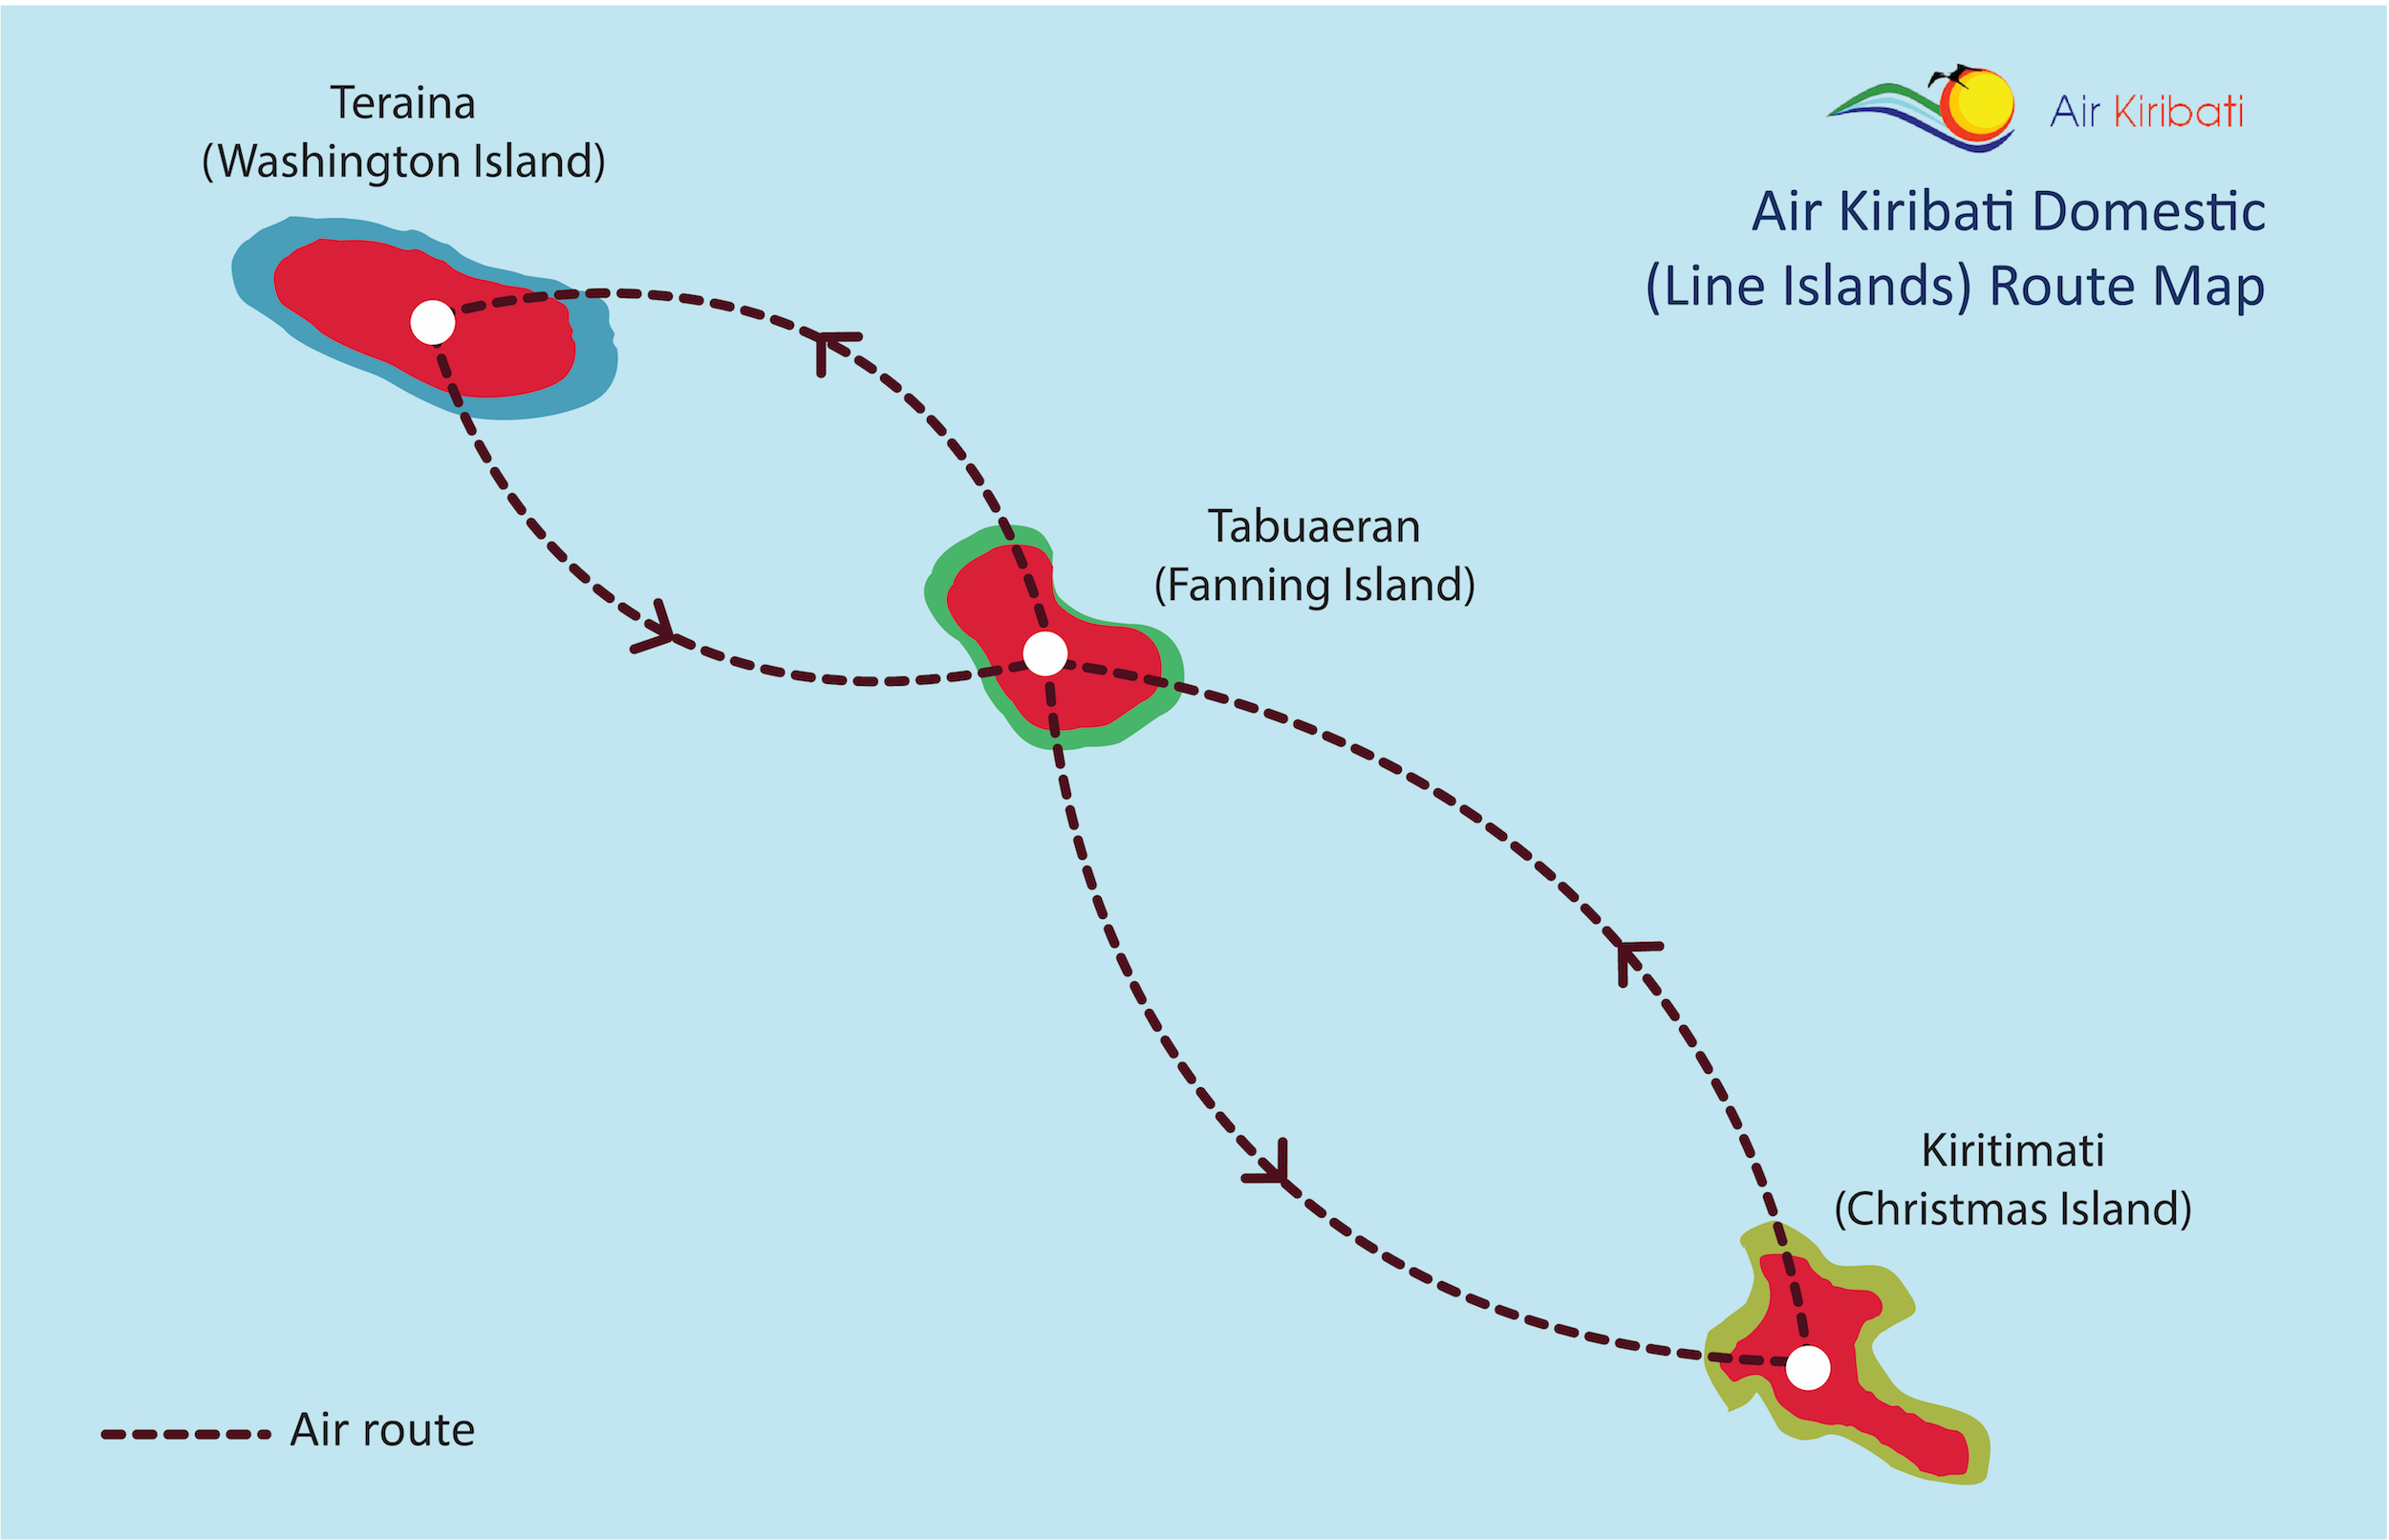 Line Island Route Map